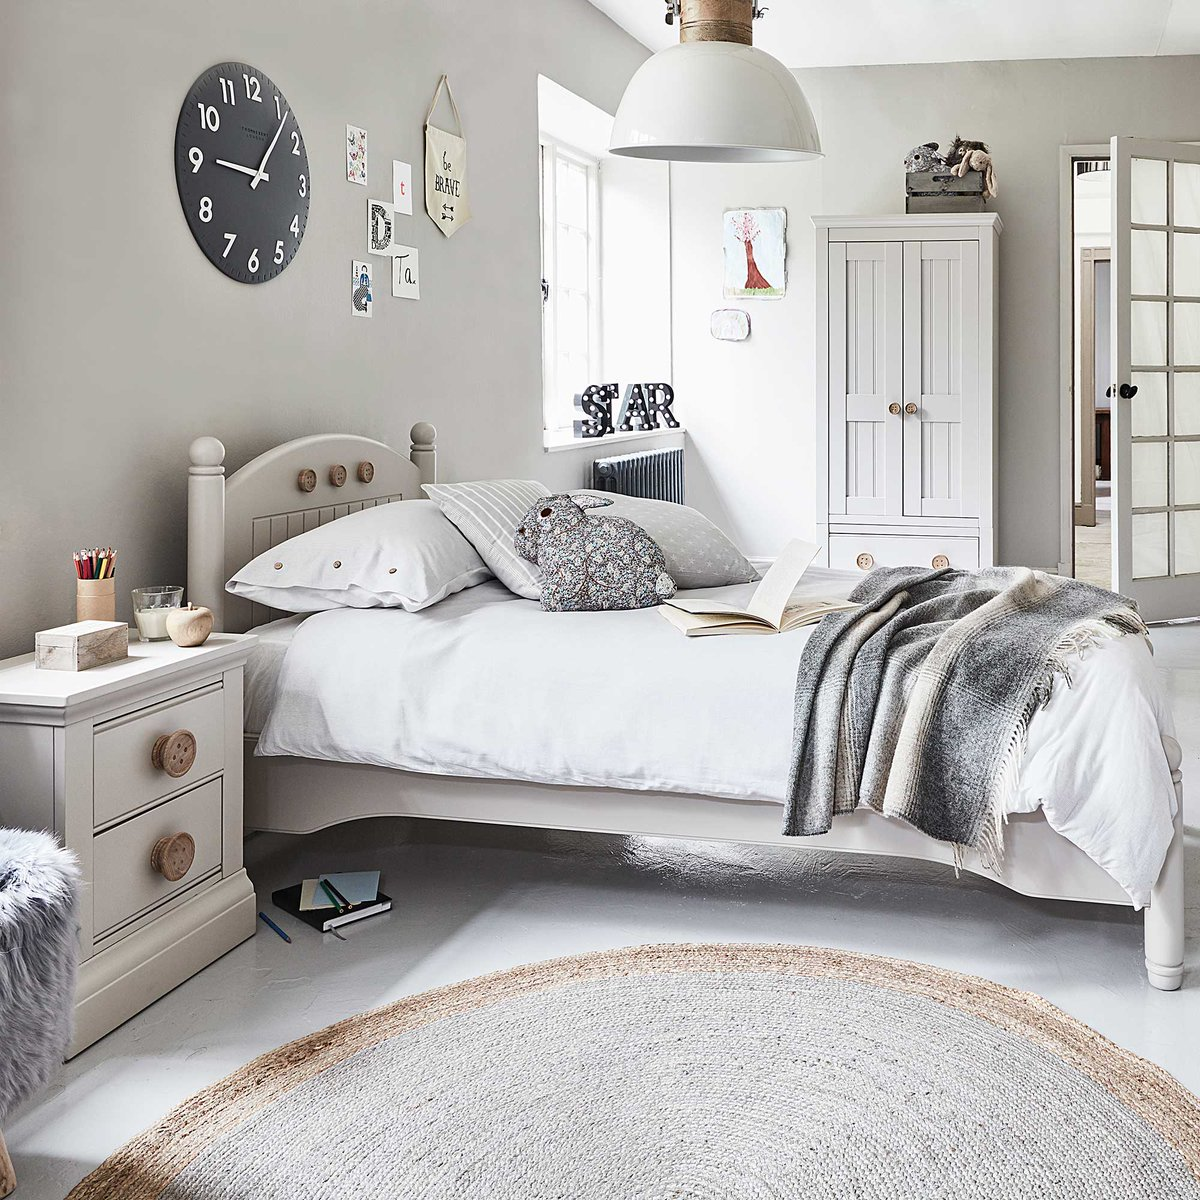 "Barker & Stonehouse on Twitter: ""Our childrens Buttons bedroom"